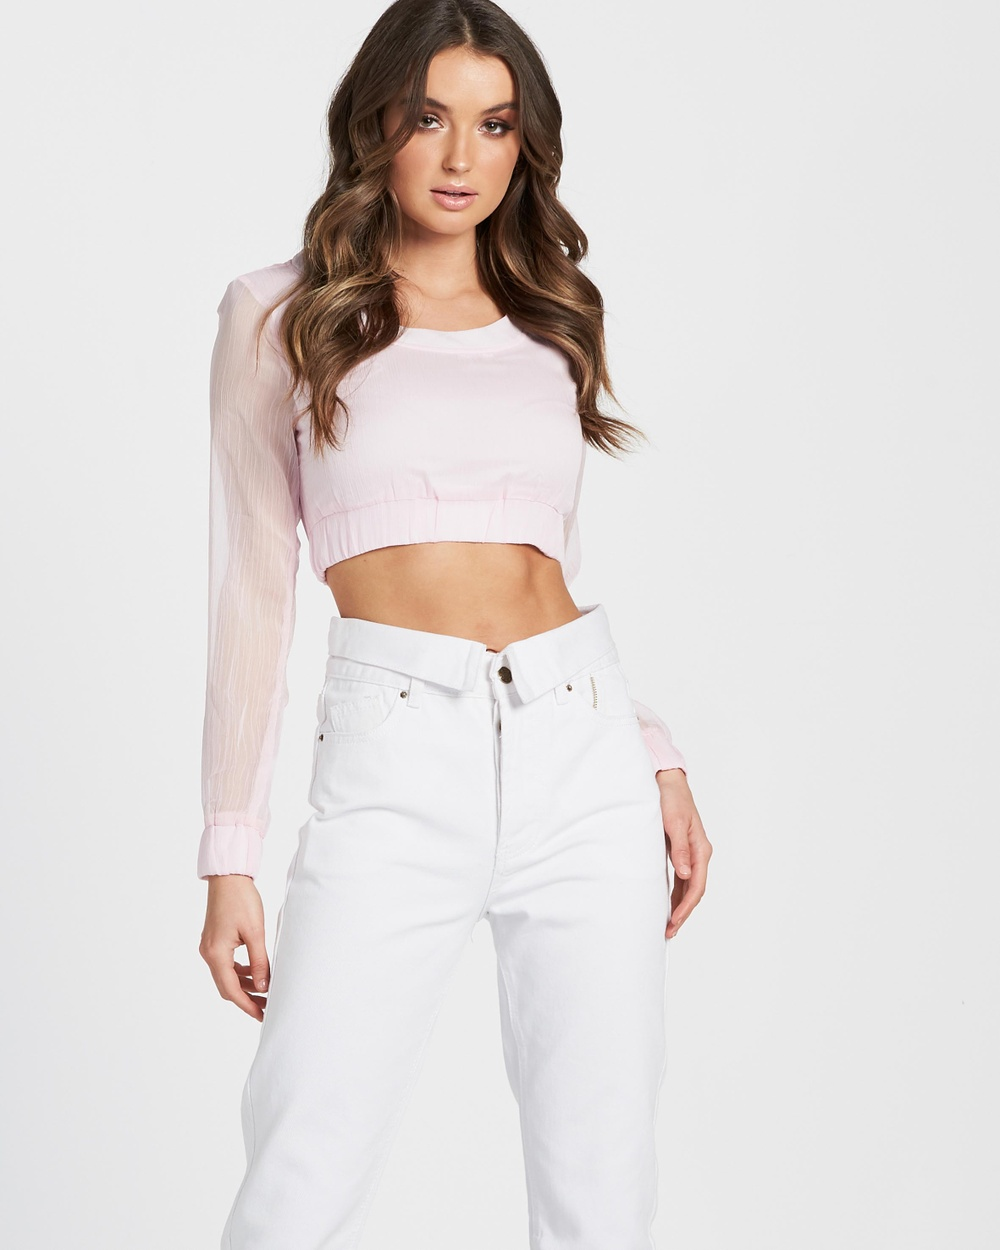 Lioness Up In Smoke Crop Top Cropped tops Pink Up In Smoke Crop Top